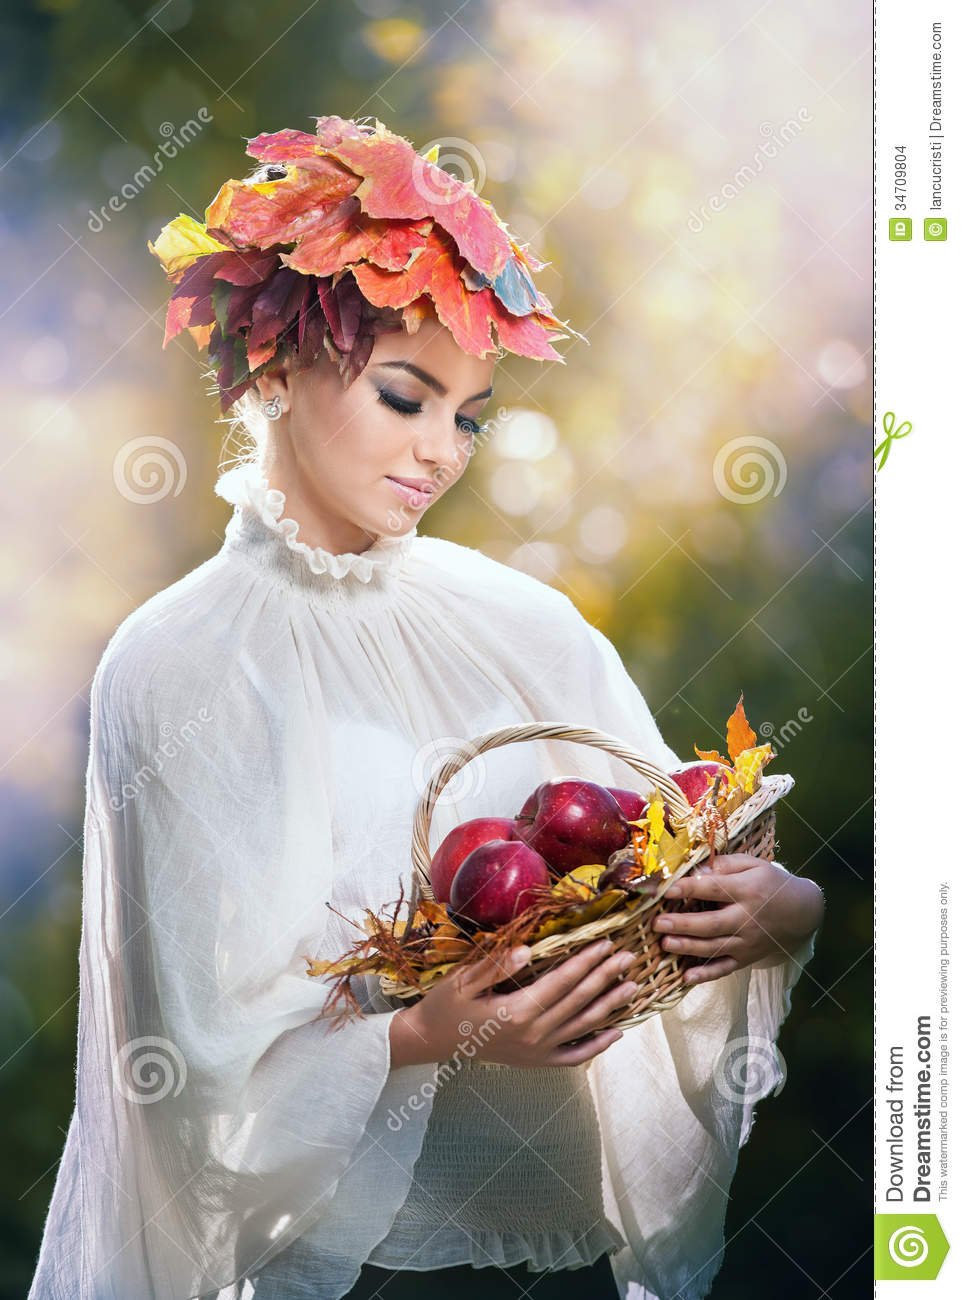 Autumn Woman. Beautiful Creative Makeup And Hair Style In